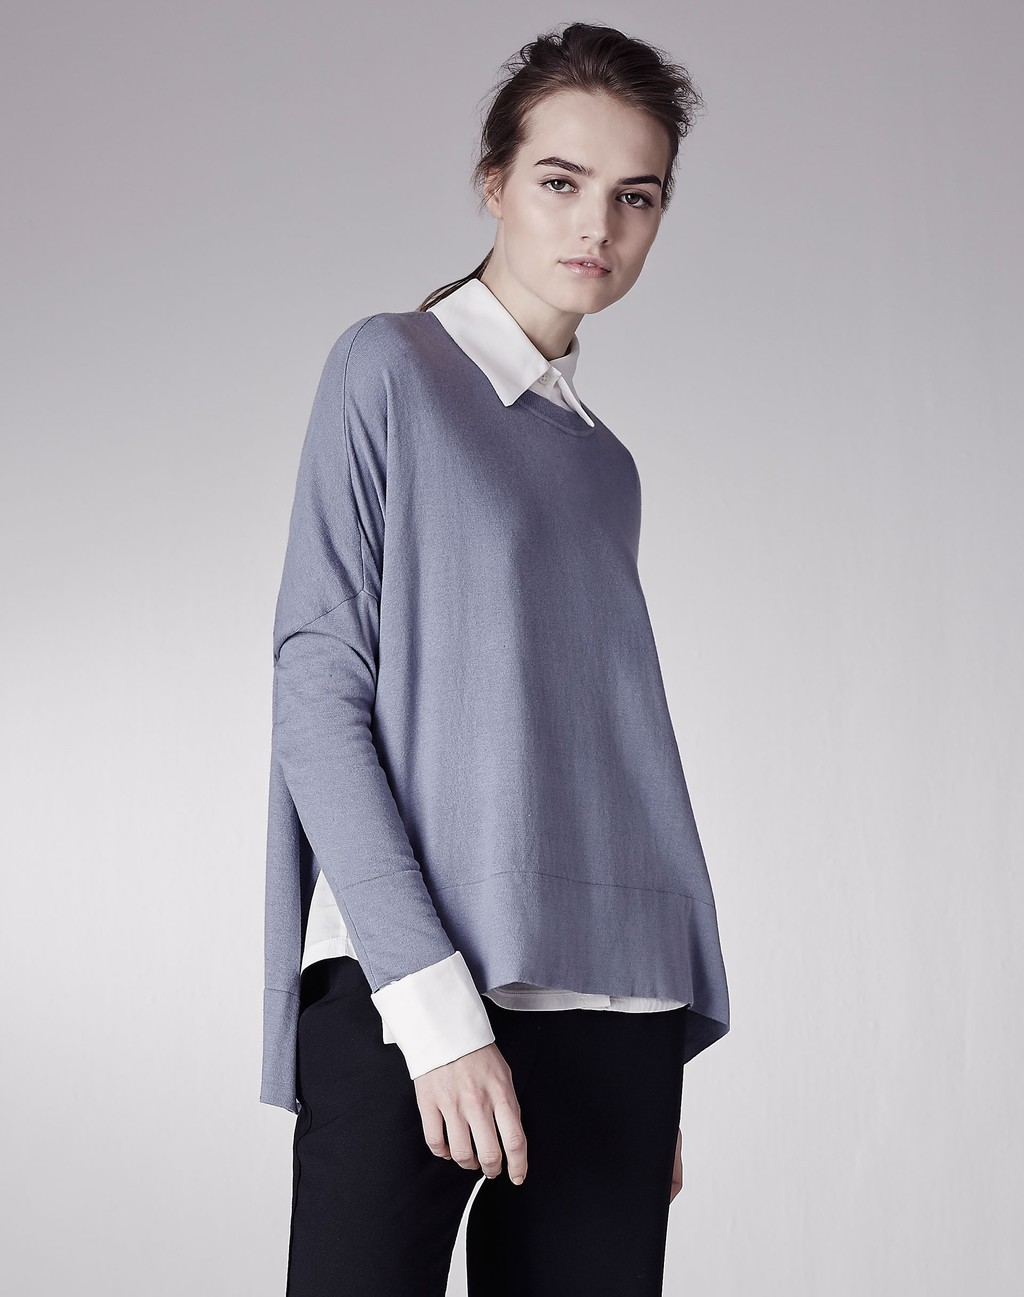 Silk Blend Relaxed Jumper China Blue - style: standard; secondary colour: ivory/cream; predominant colour: mid grey; occasions: casual, creative work; length: standard; fibres: wool - mix; fit: loose; neckline: no opening/shirt collar/peter pan; sleeve length: long sleeve; sleeve style: standard; texture group: knits/crochet; pattern type: knitted - fine stitch; pattern size: standard; pattern: colourblock; season: a/w 2015; wardrobe: highlight